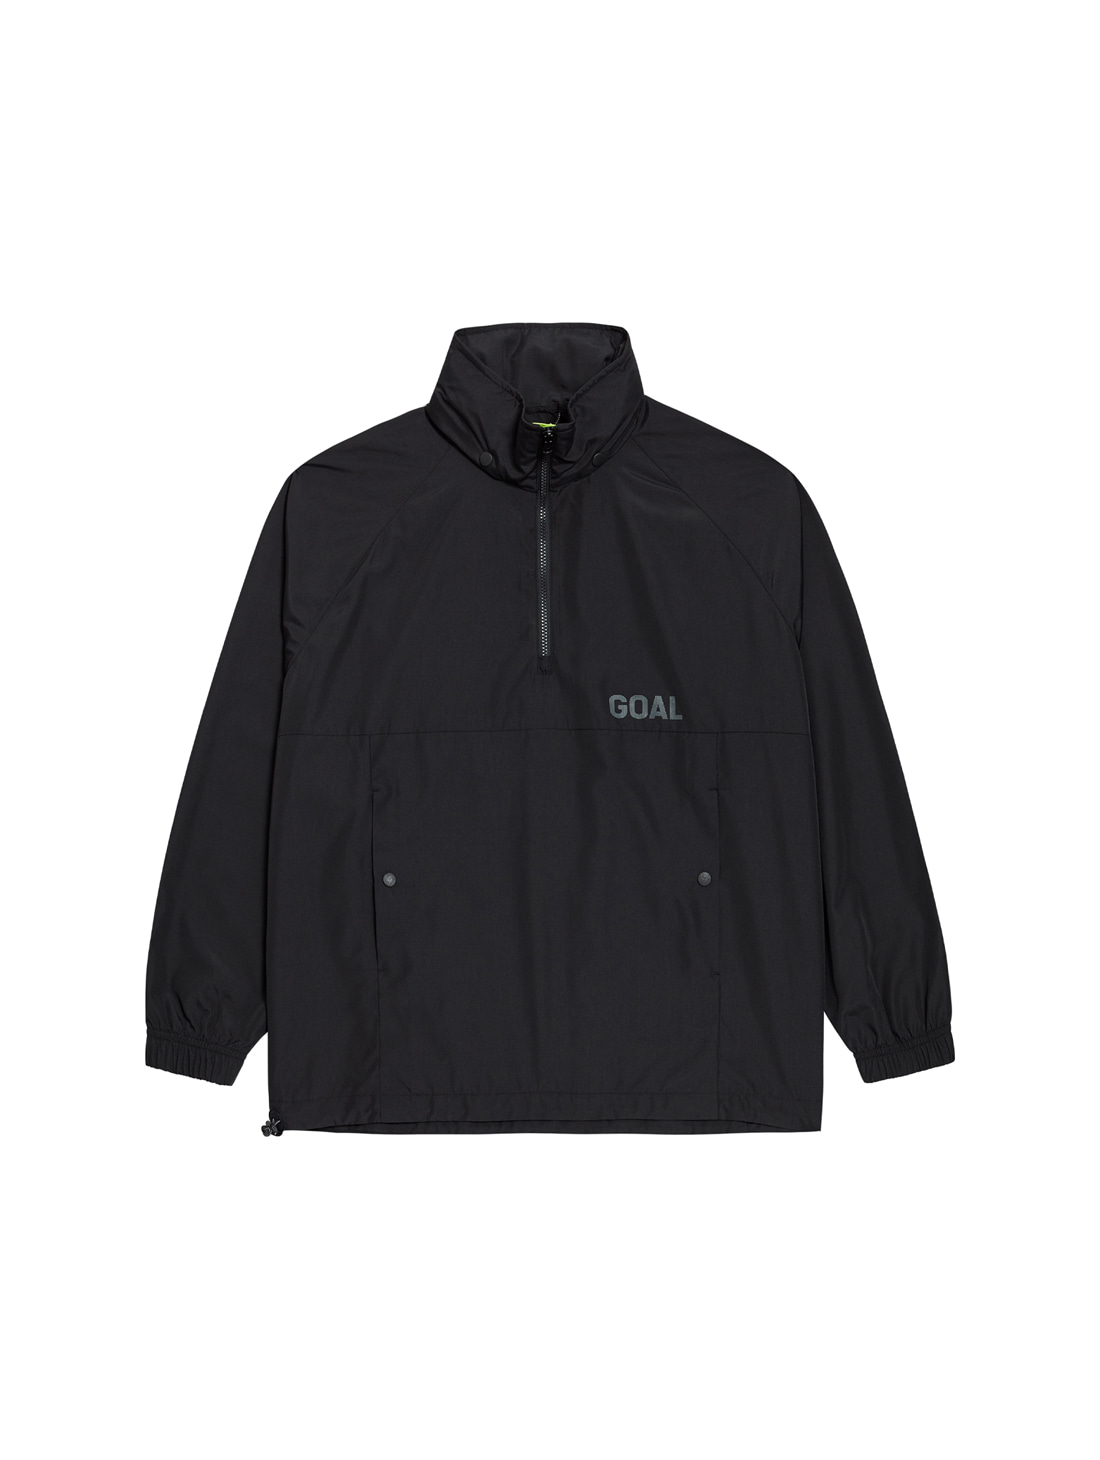 GOALSTUDIO LTG ANORAK - BLACK